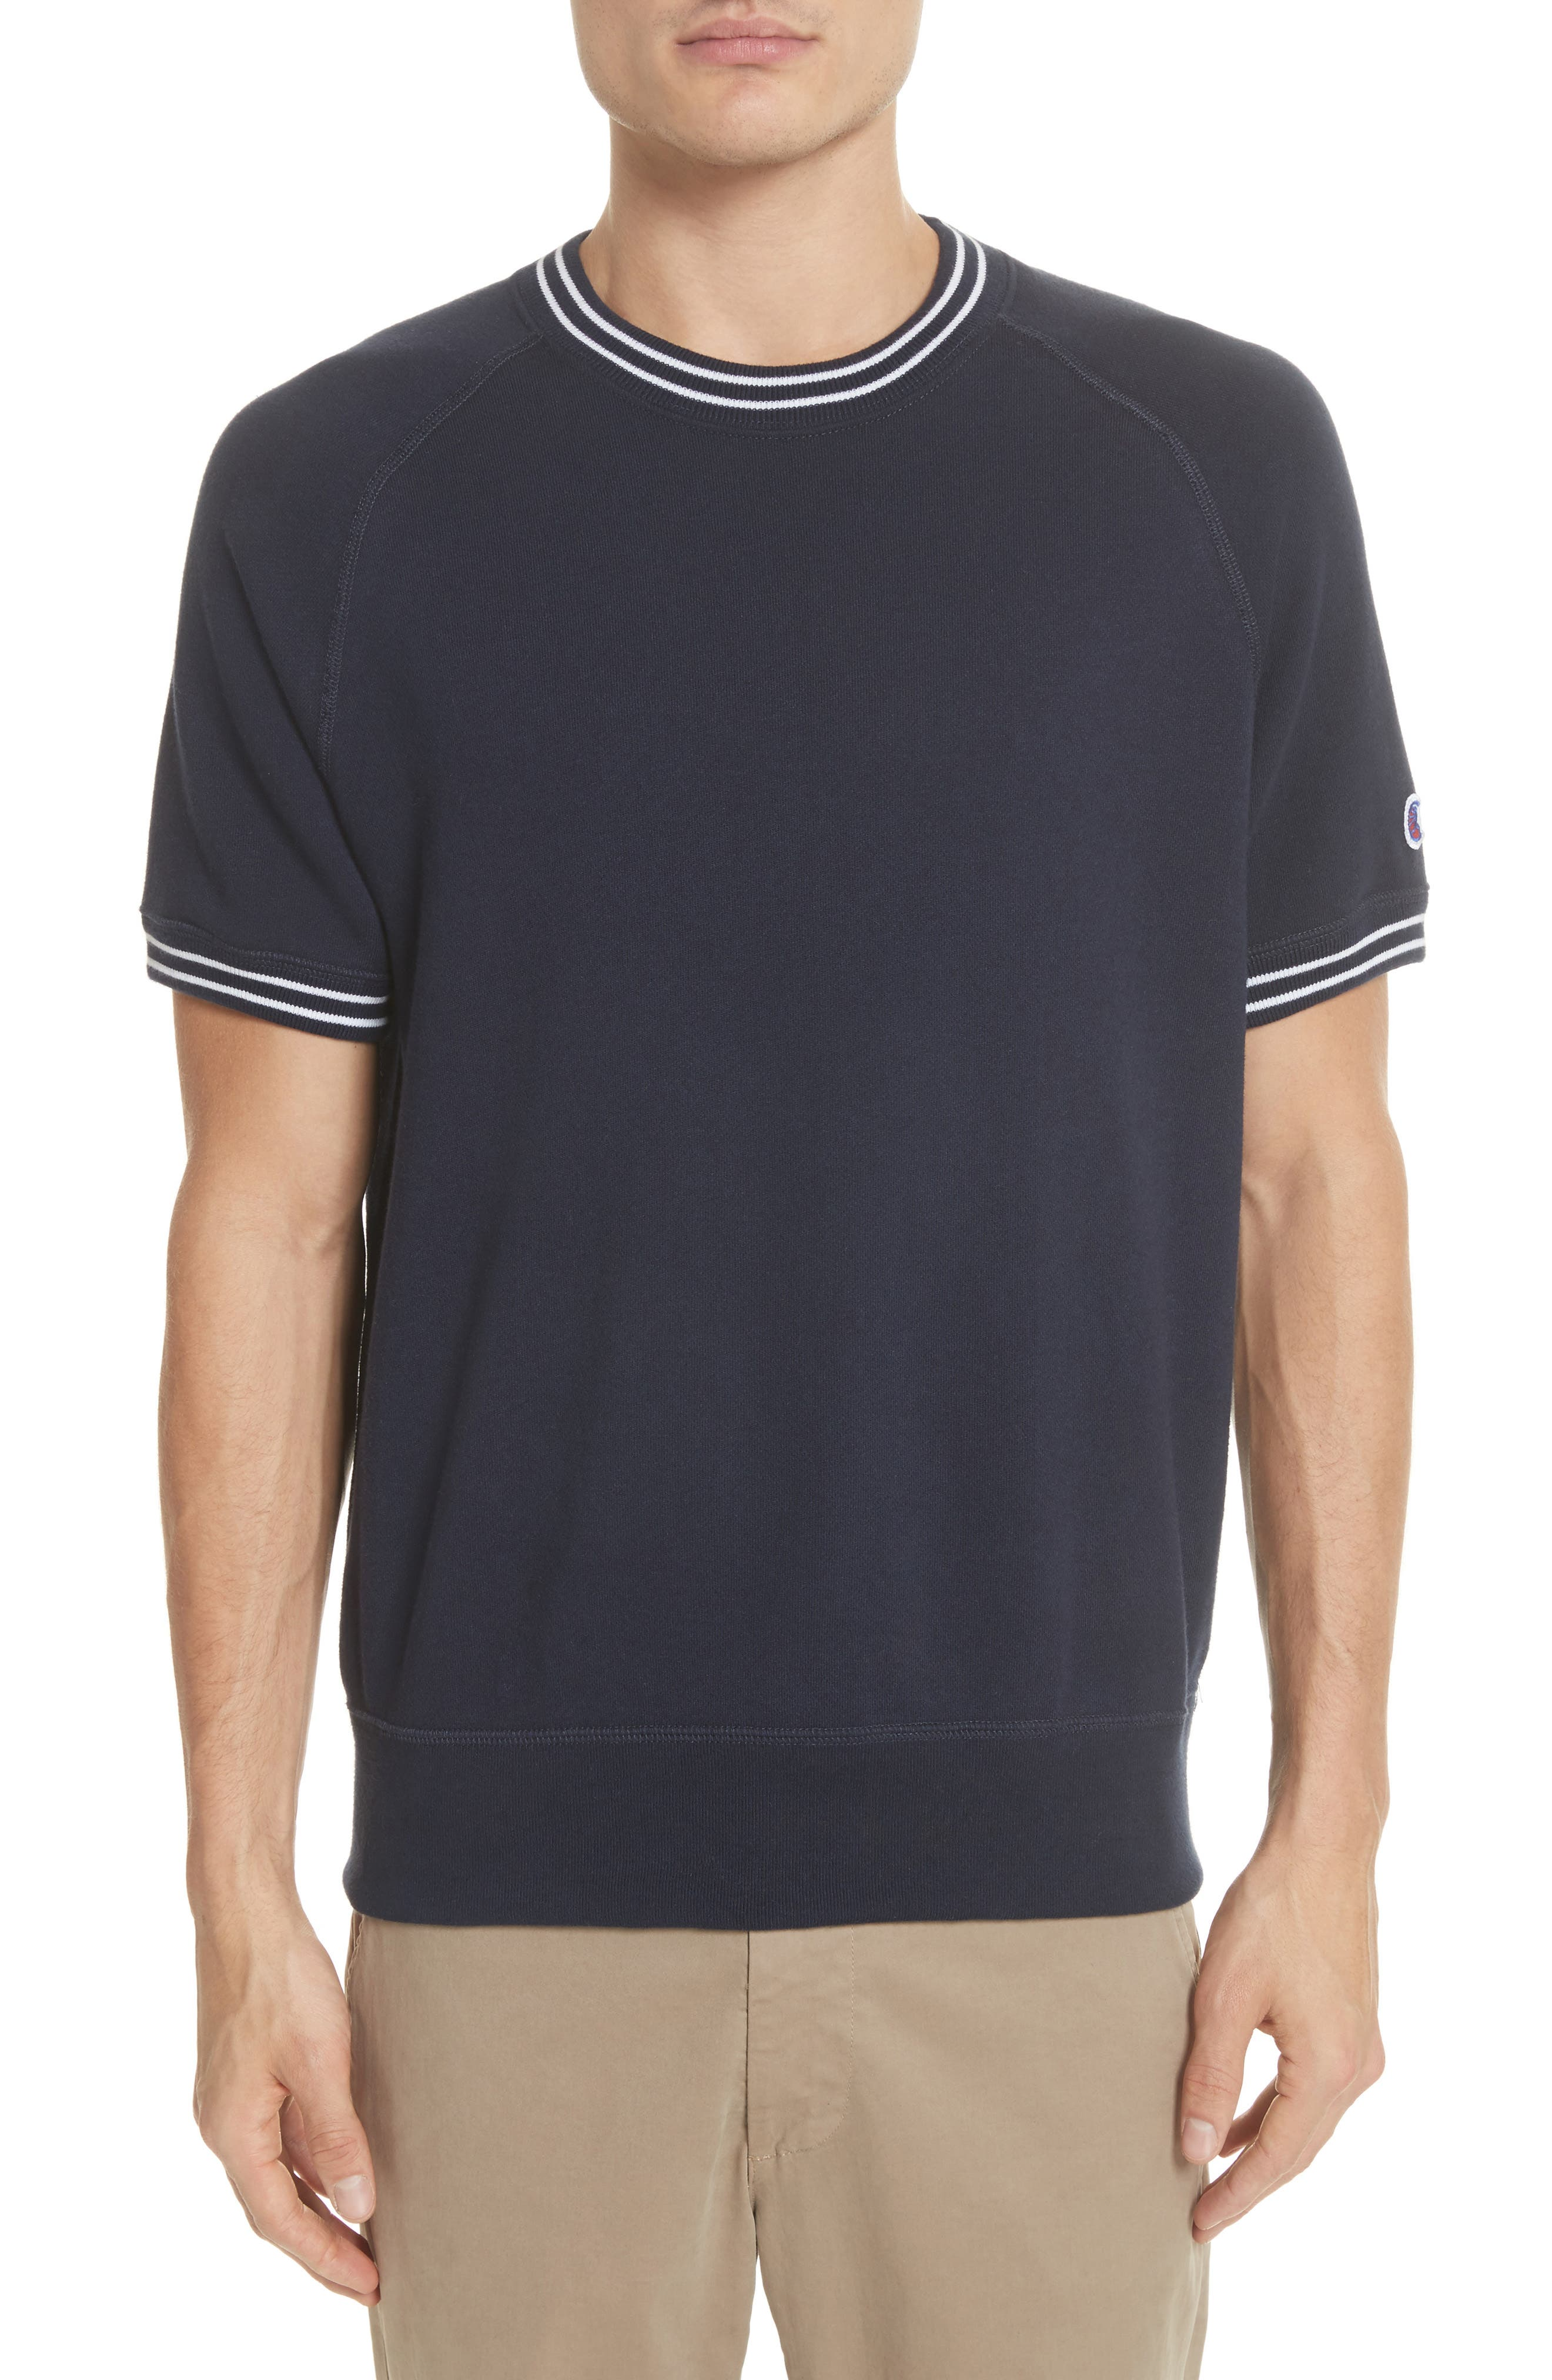 Todd Snyder + Champion Stripe Rib Short Sleeve Sweatshirt